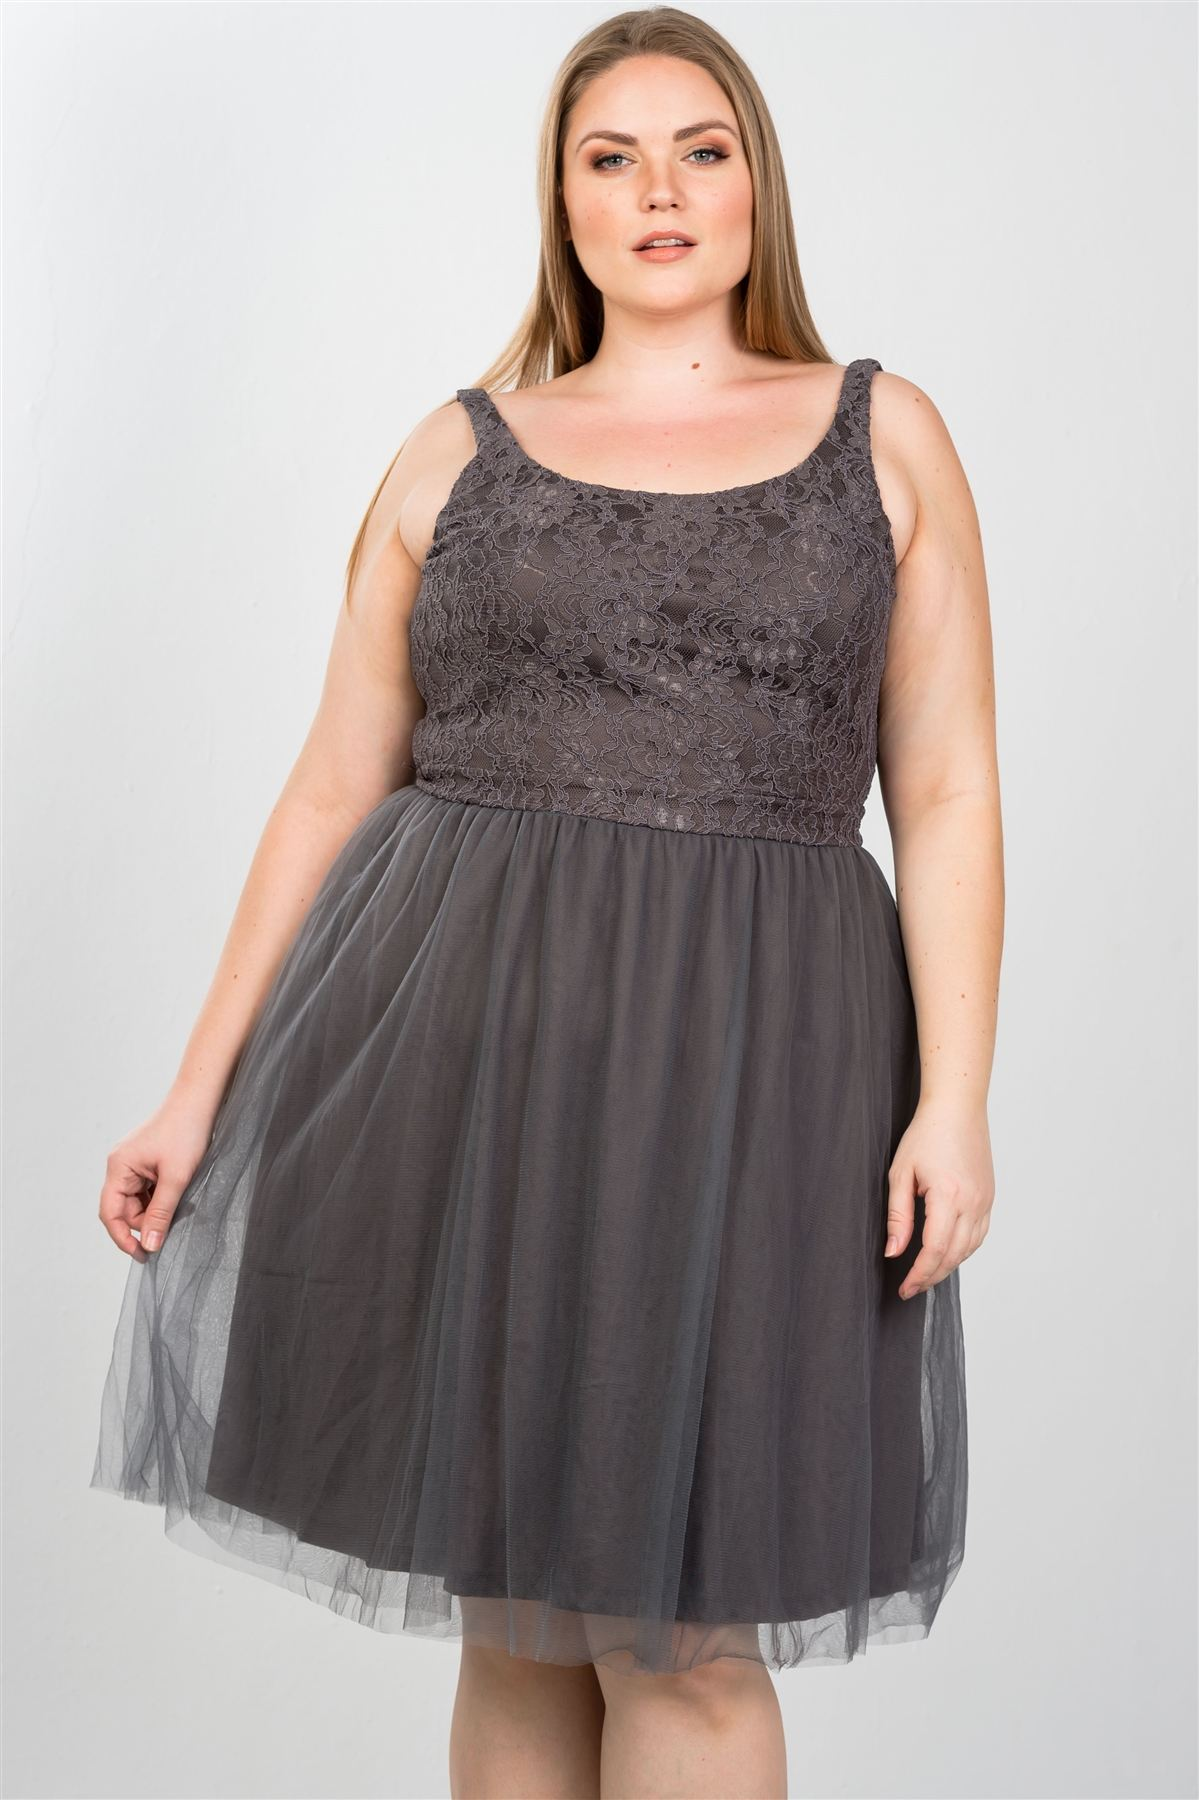 c5b5870a3e4 Plus Size Full Skirt Dresses - Data Dynamic AG